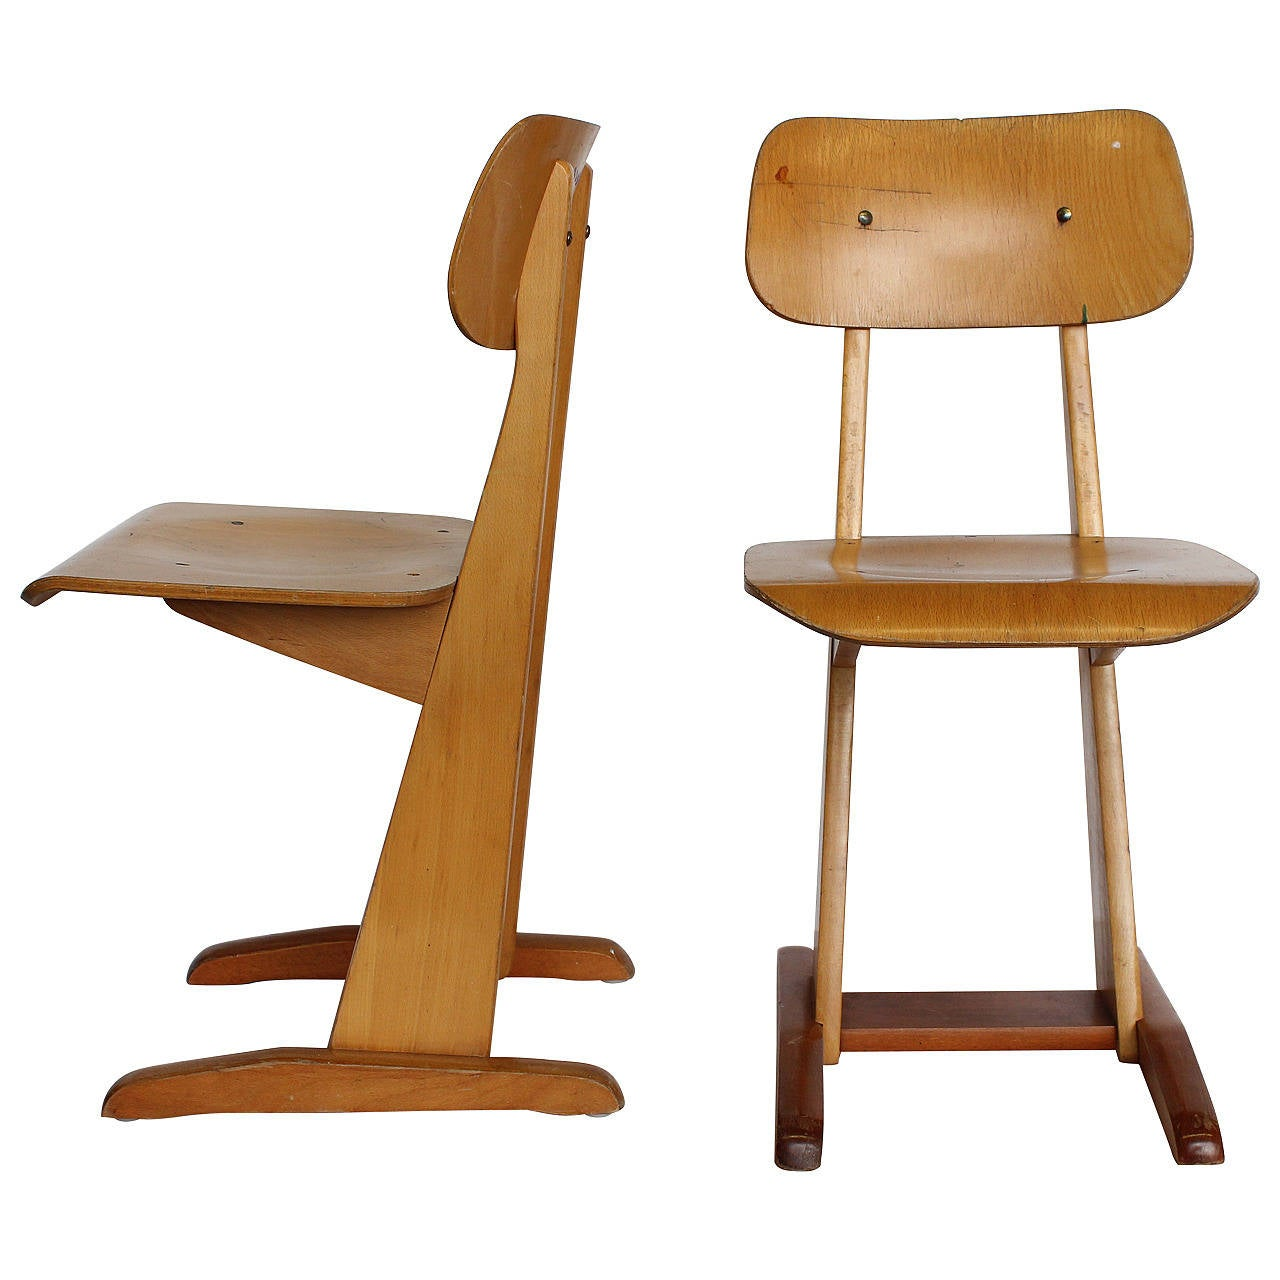 bauhaus swivel chair fisher price space saver high replacement straps 1950s german sled school chairs by karl nothelfer